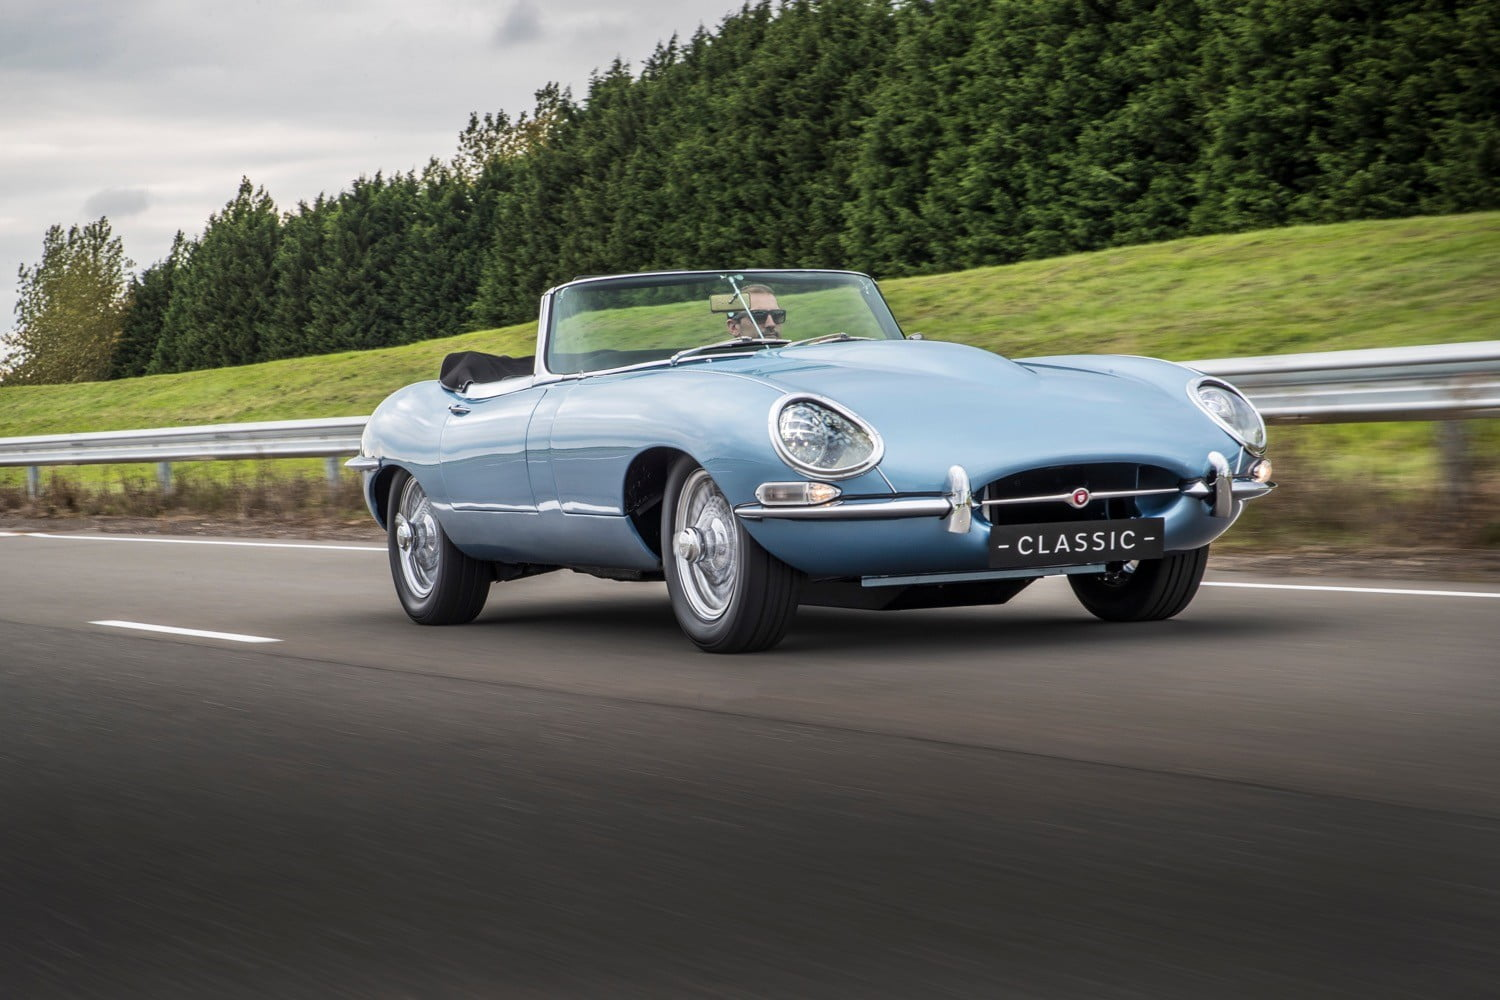 These classic cars marry timeless style with modern electric power